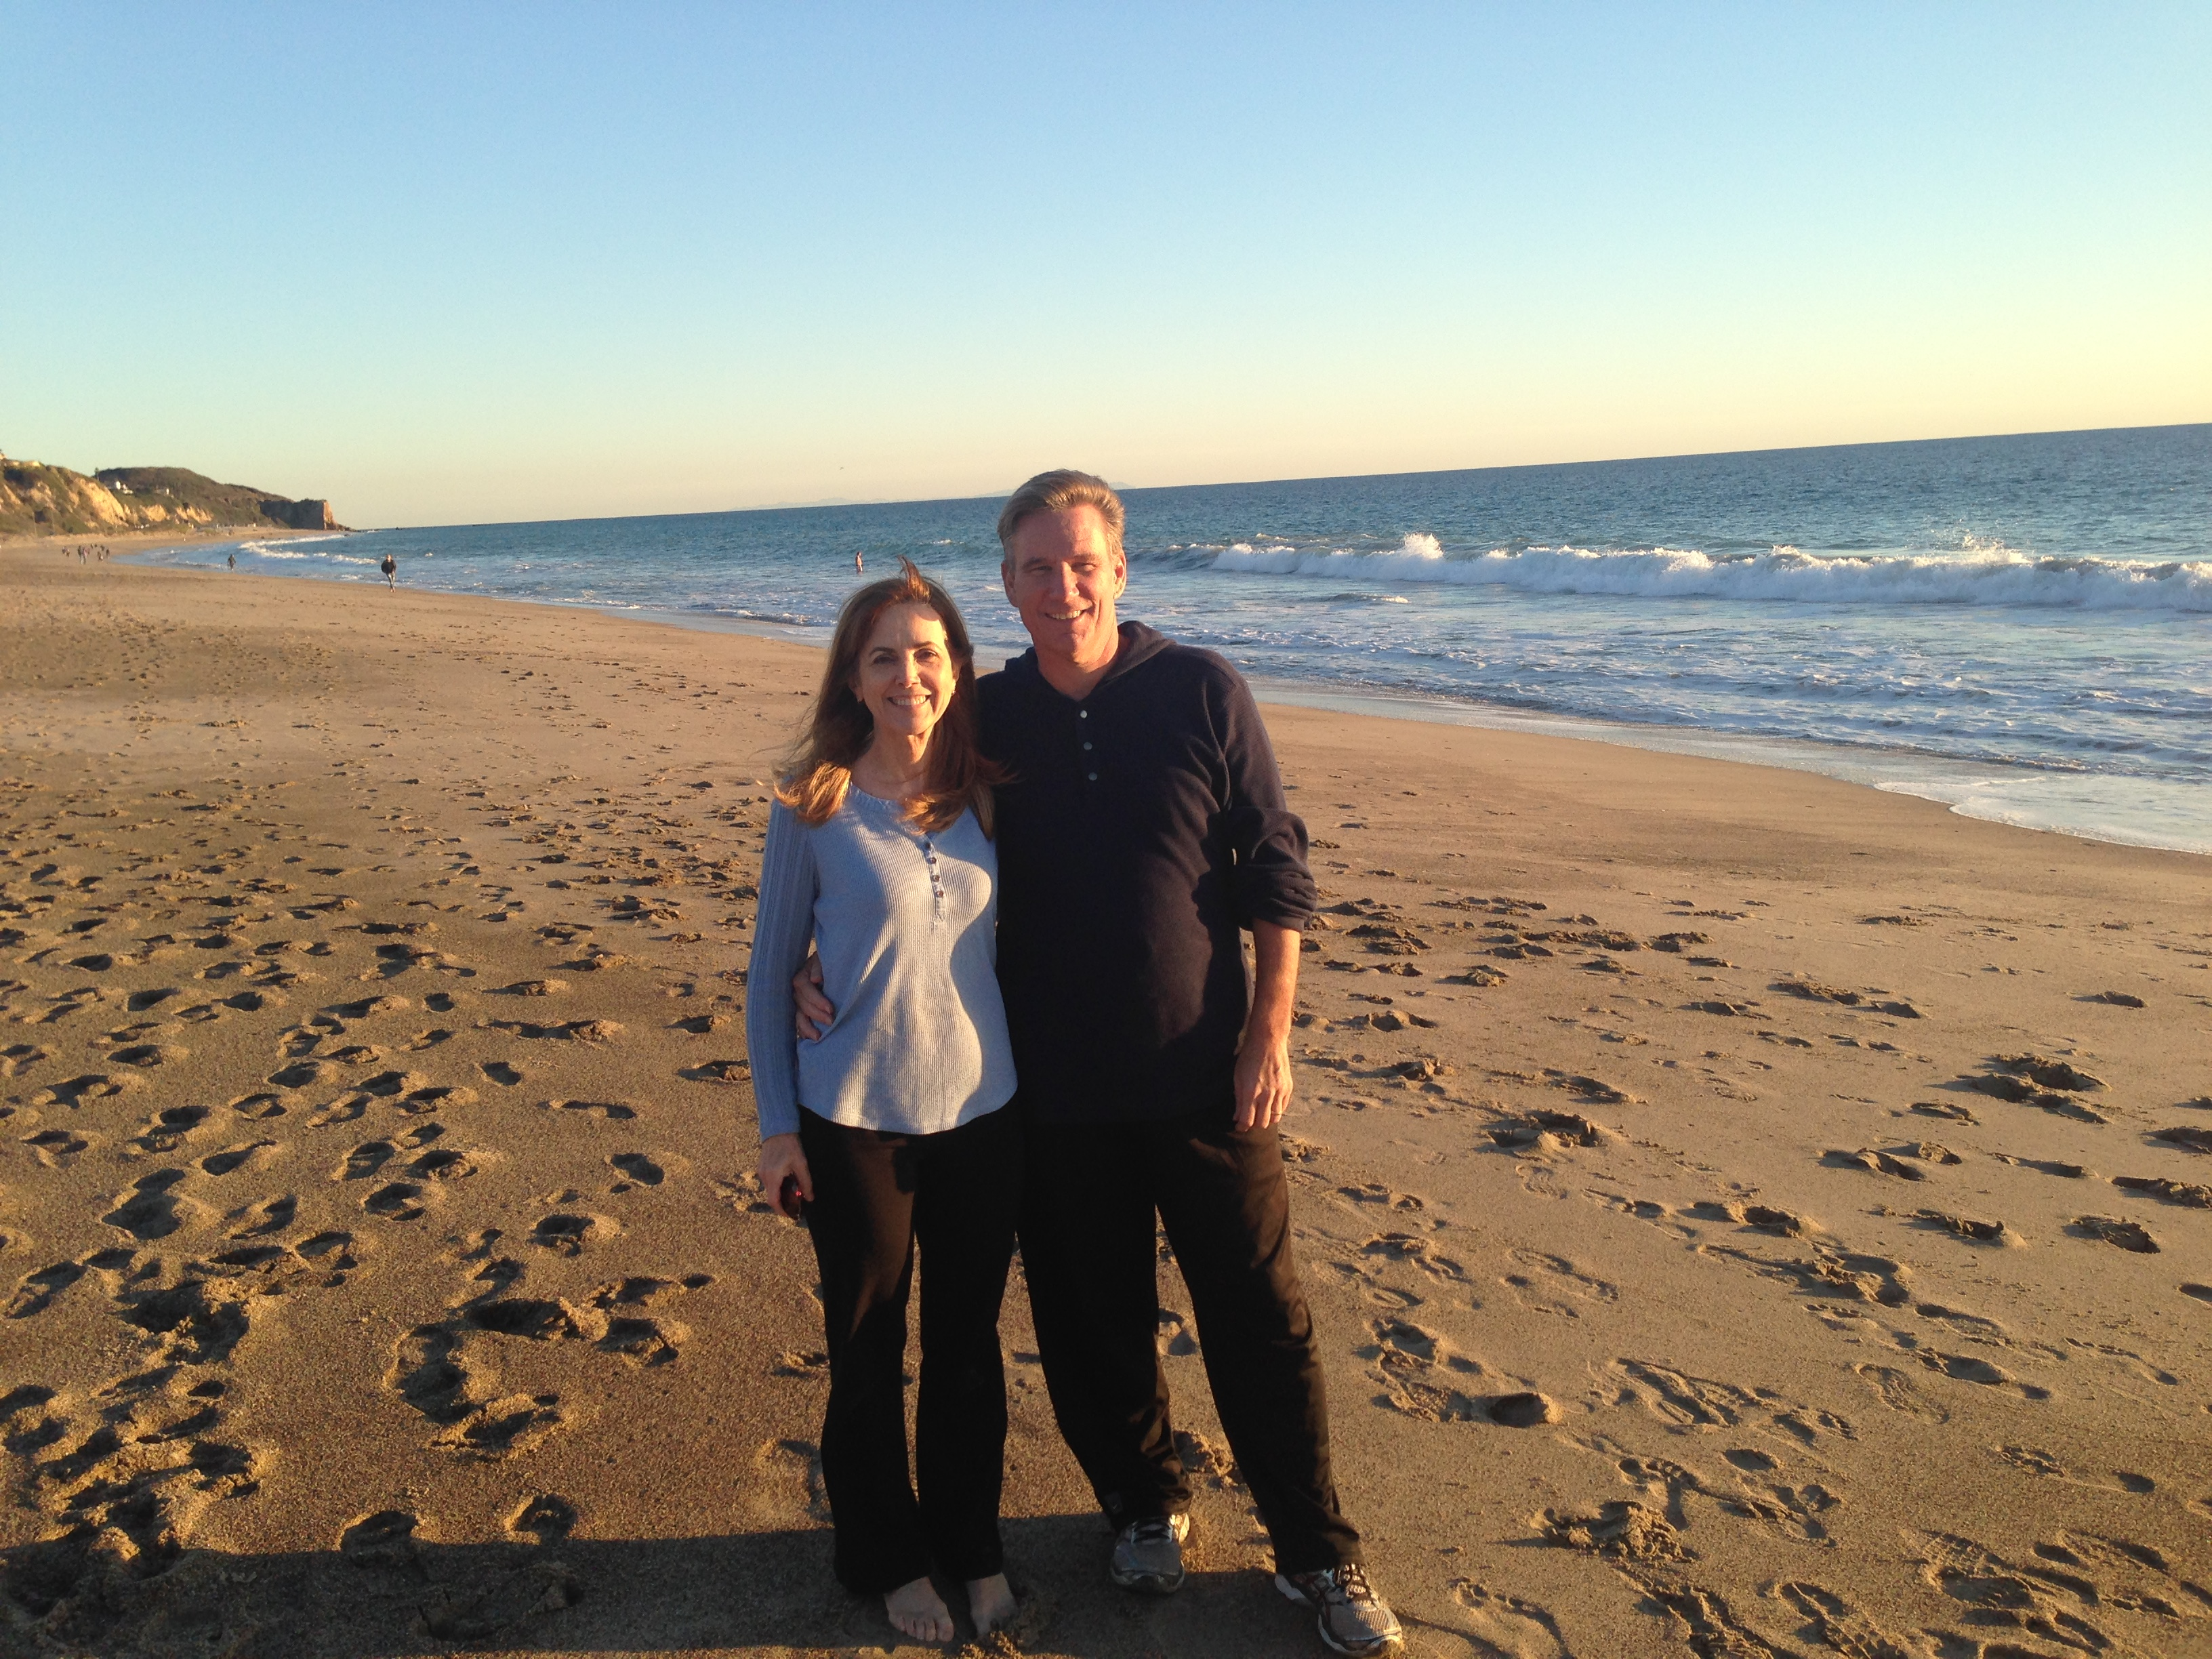 Ken and Bec at Malibu